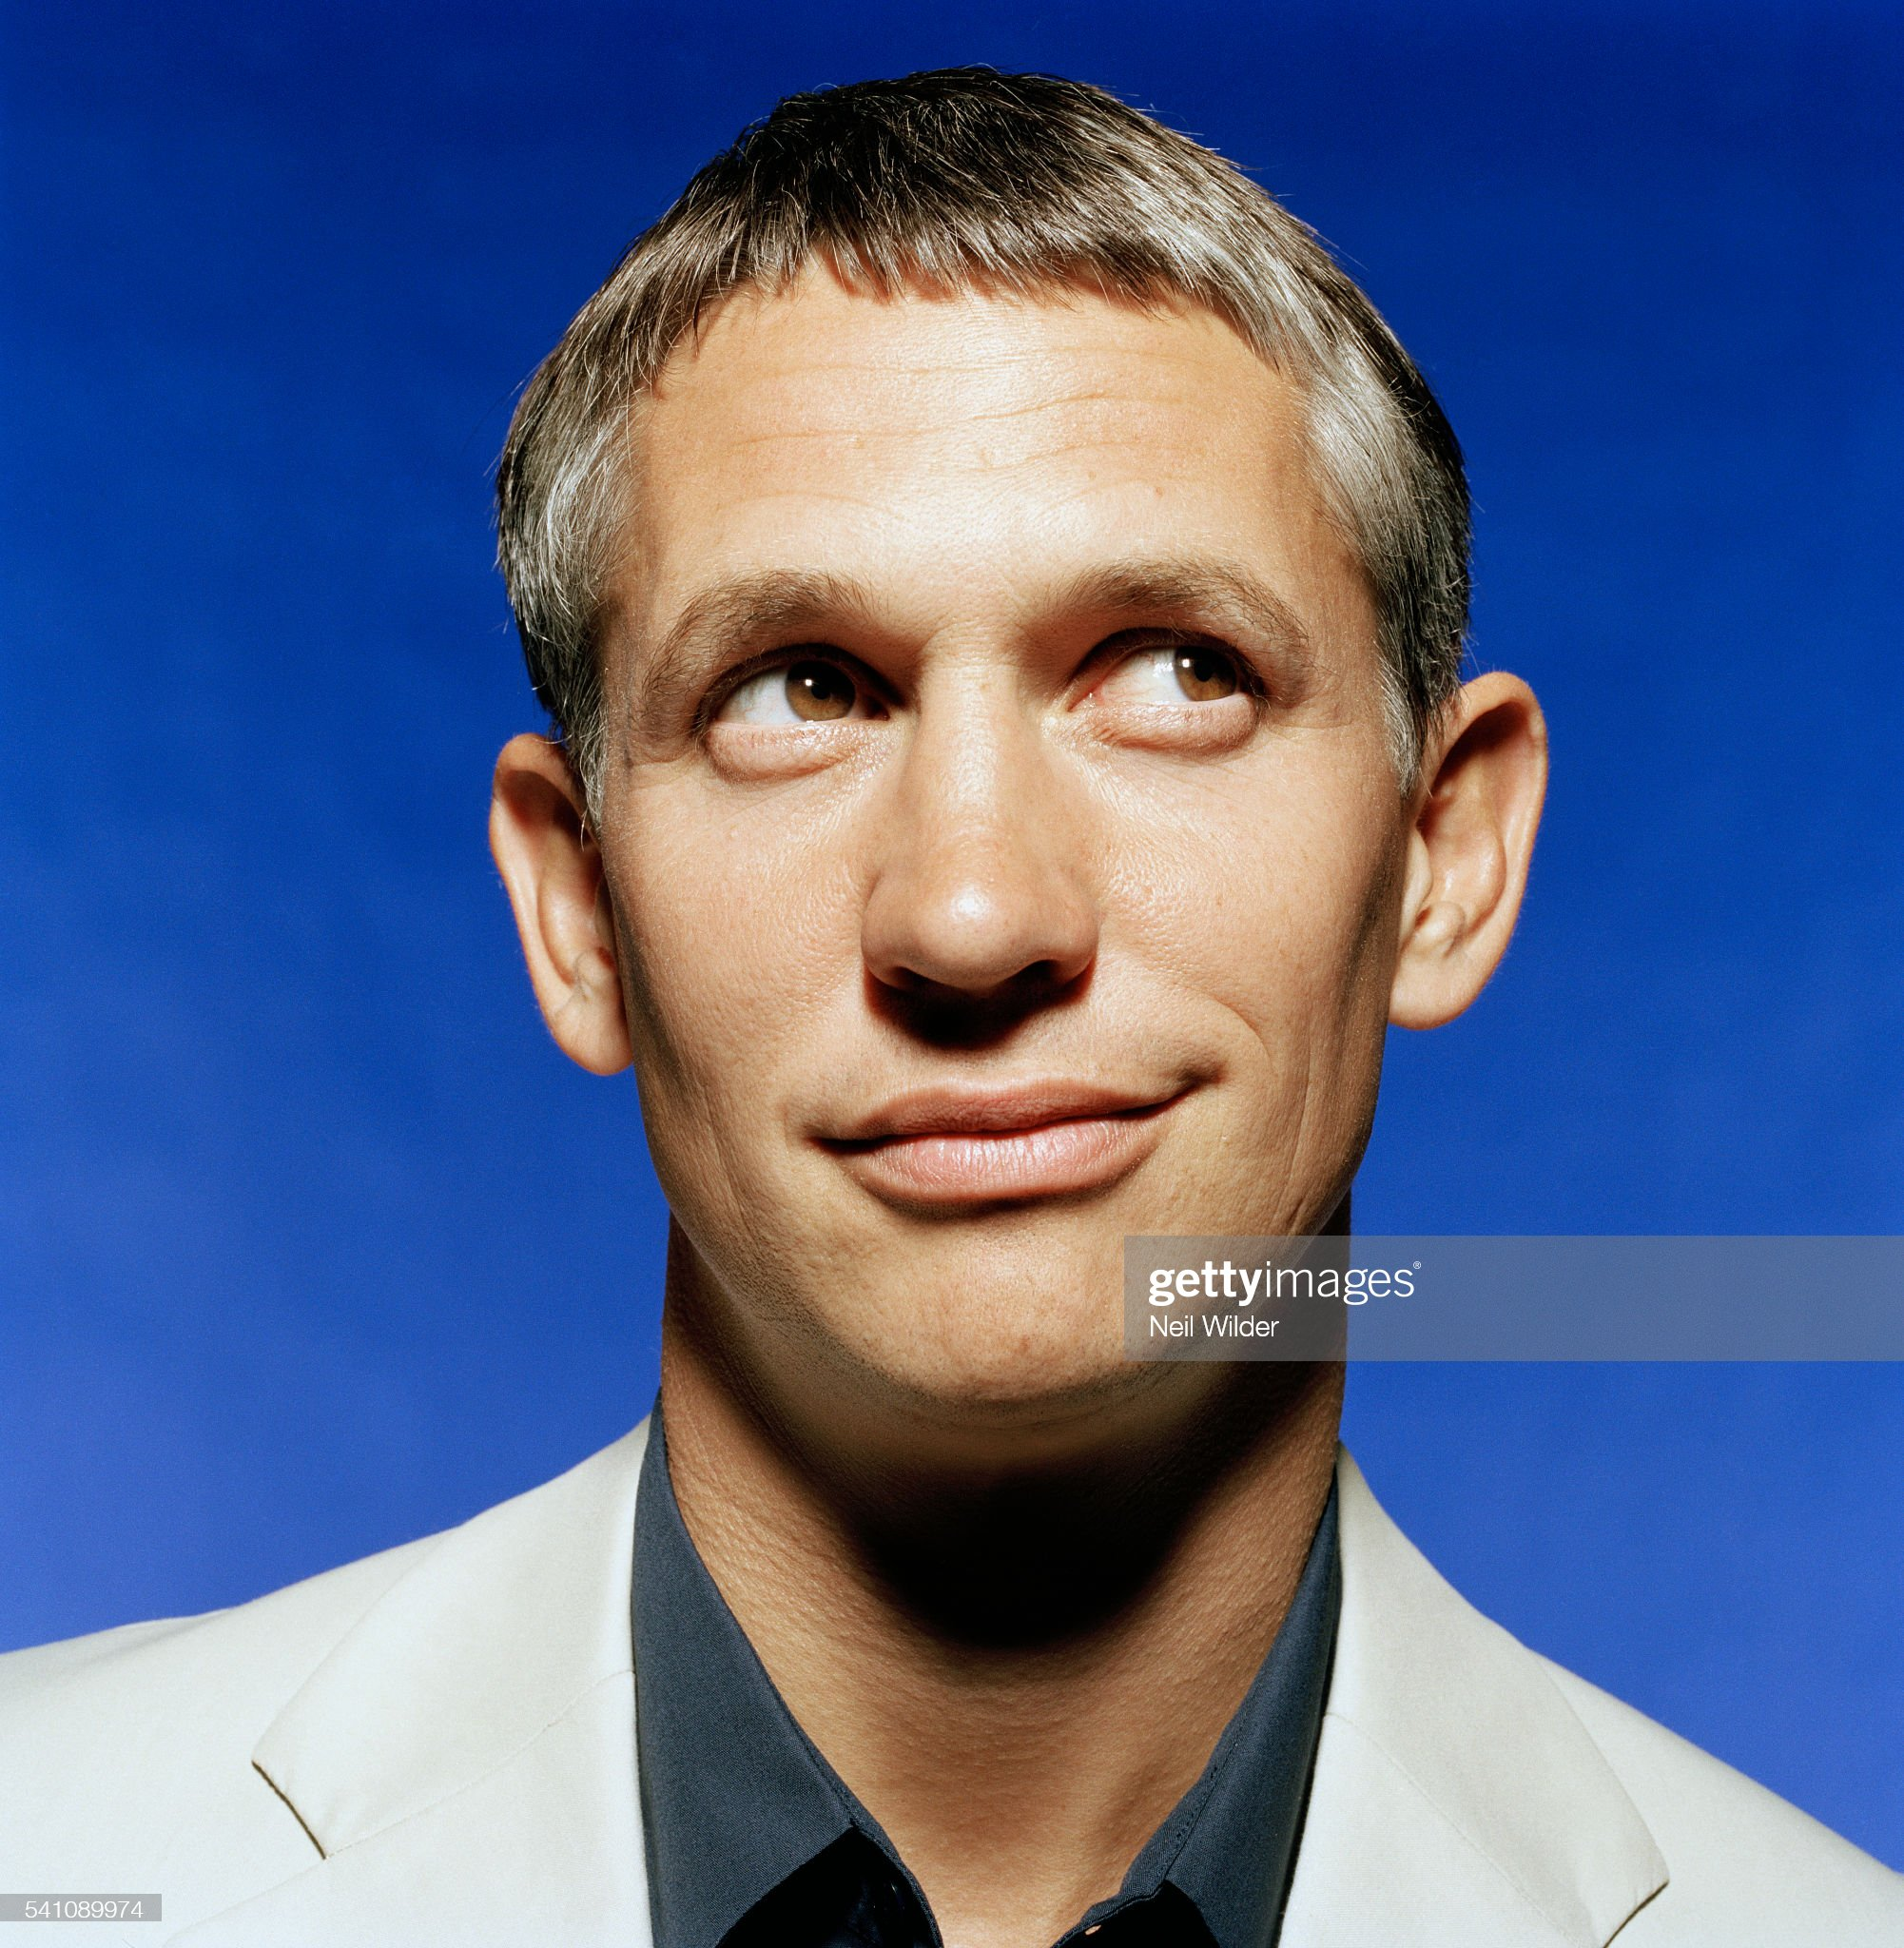 ¿Cuánto mide Gary Lineker? - Altura - Real height Gary-lineker-picture-id541089974?s=2048x2048